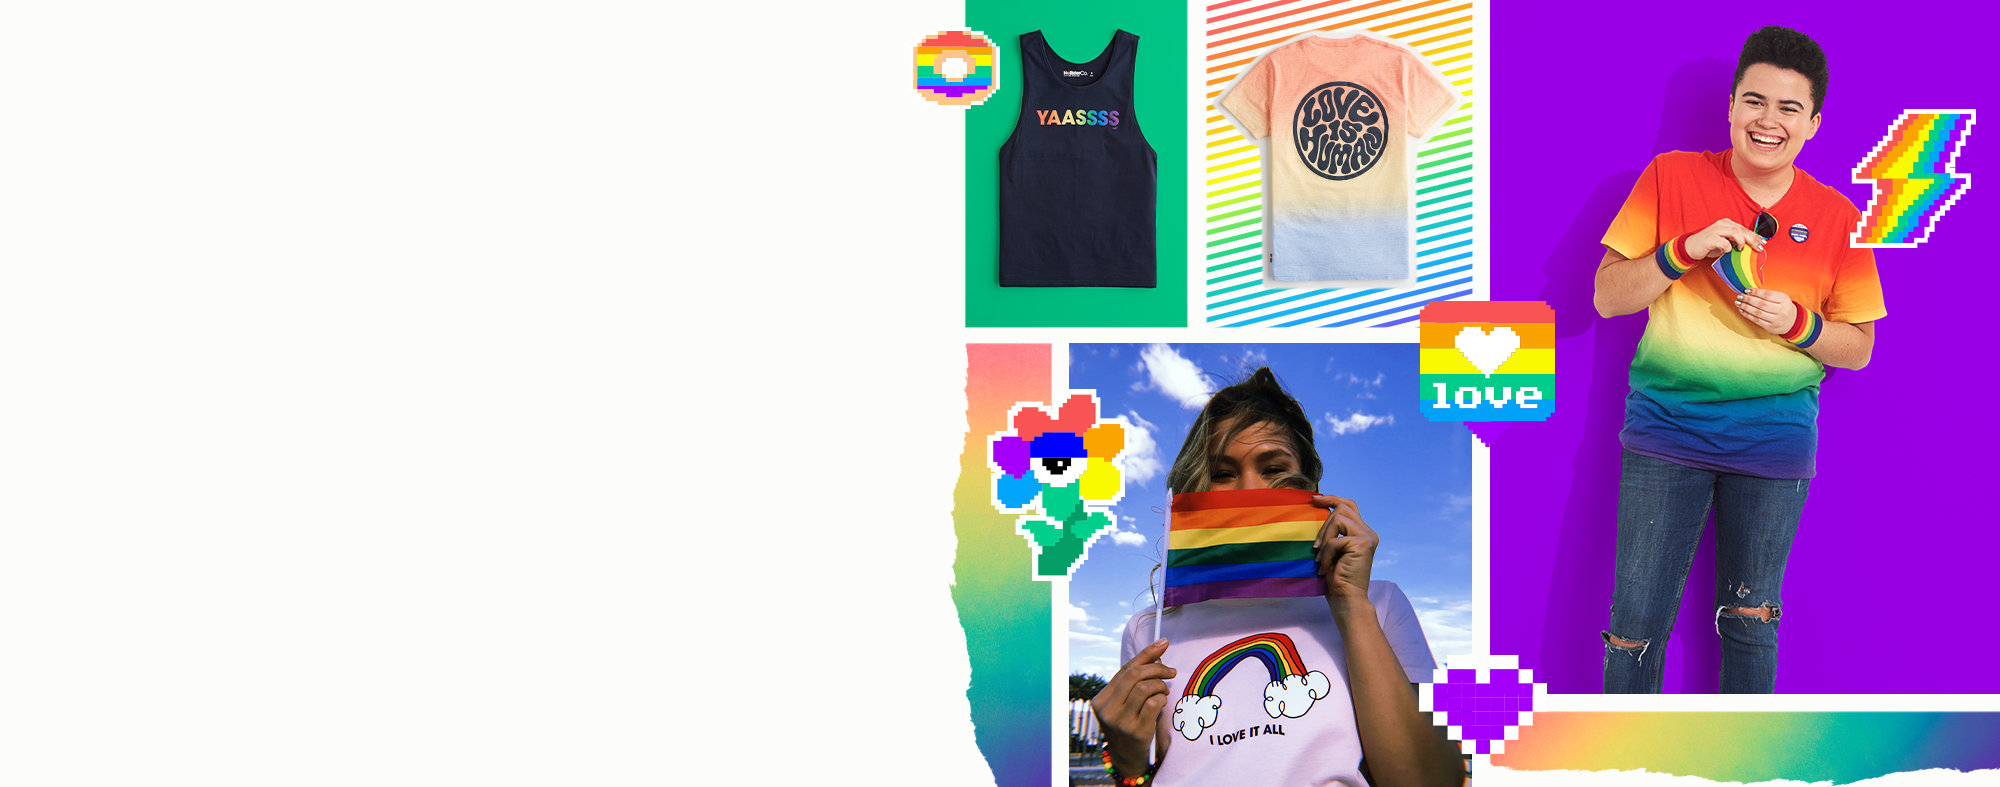 237e80b2f68 Pride collection Be the you you love.